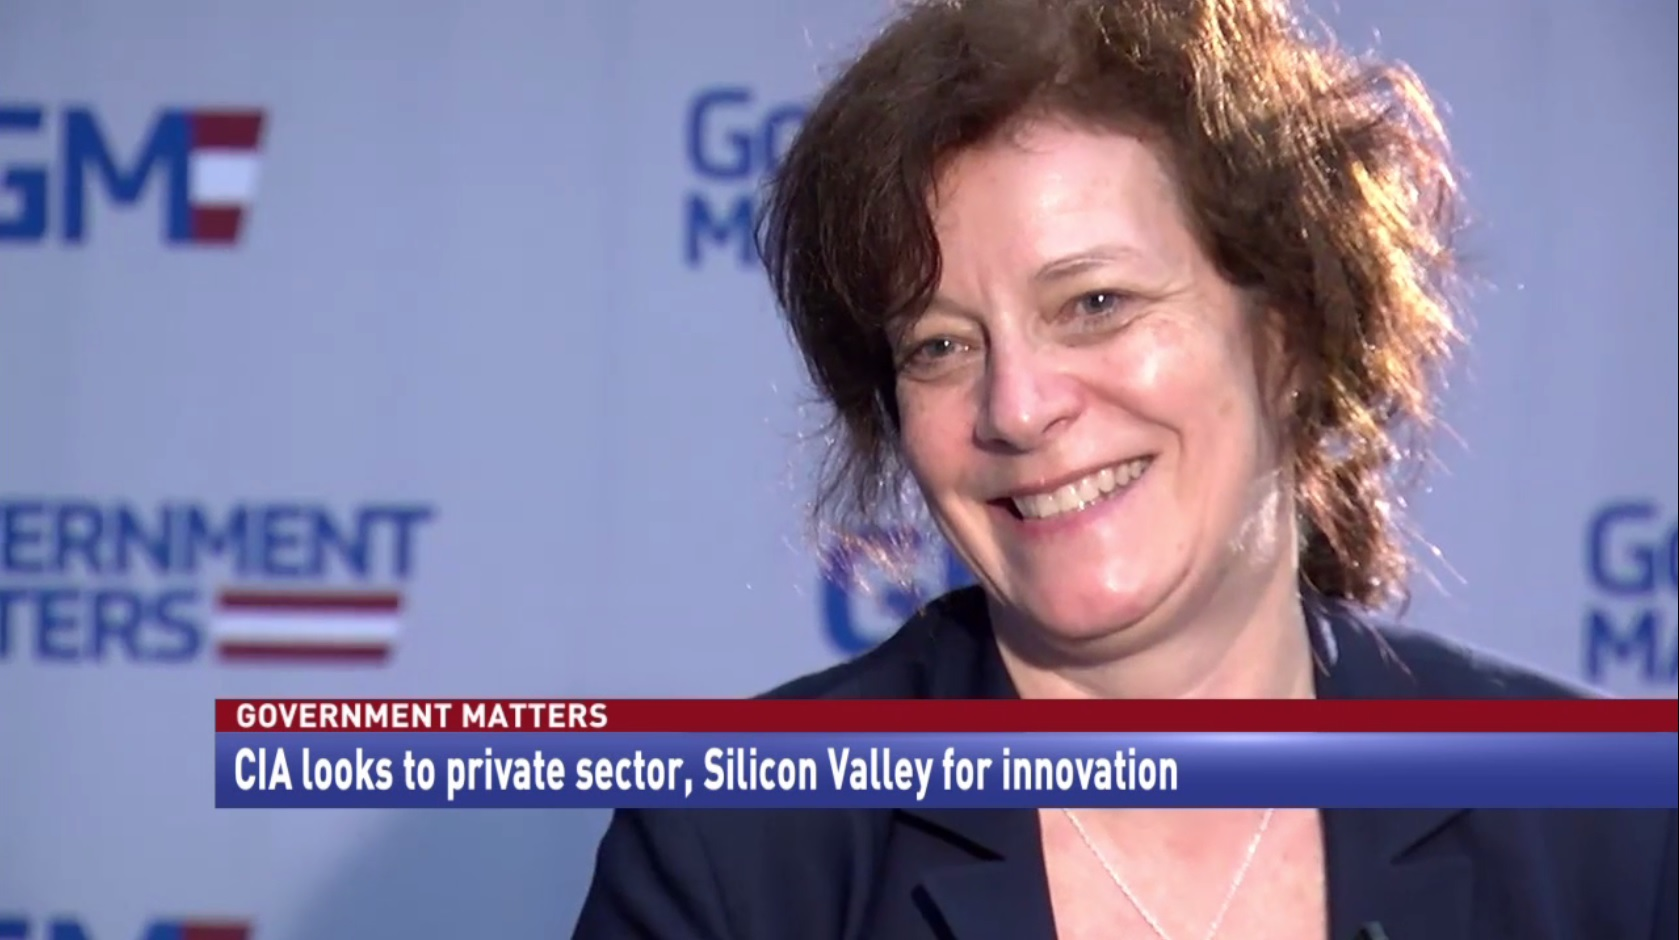 CIA looks to private sector, Silicon Valley for innovation